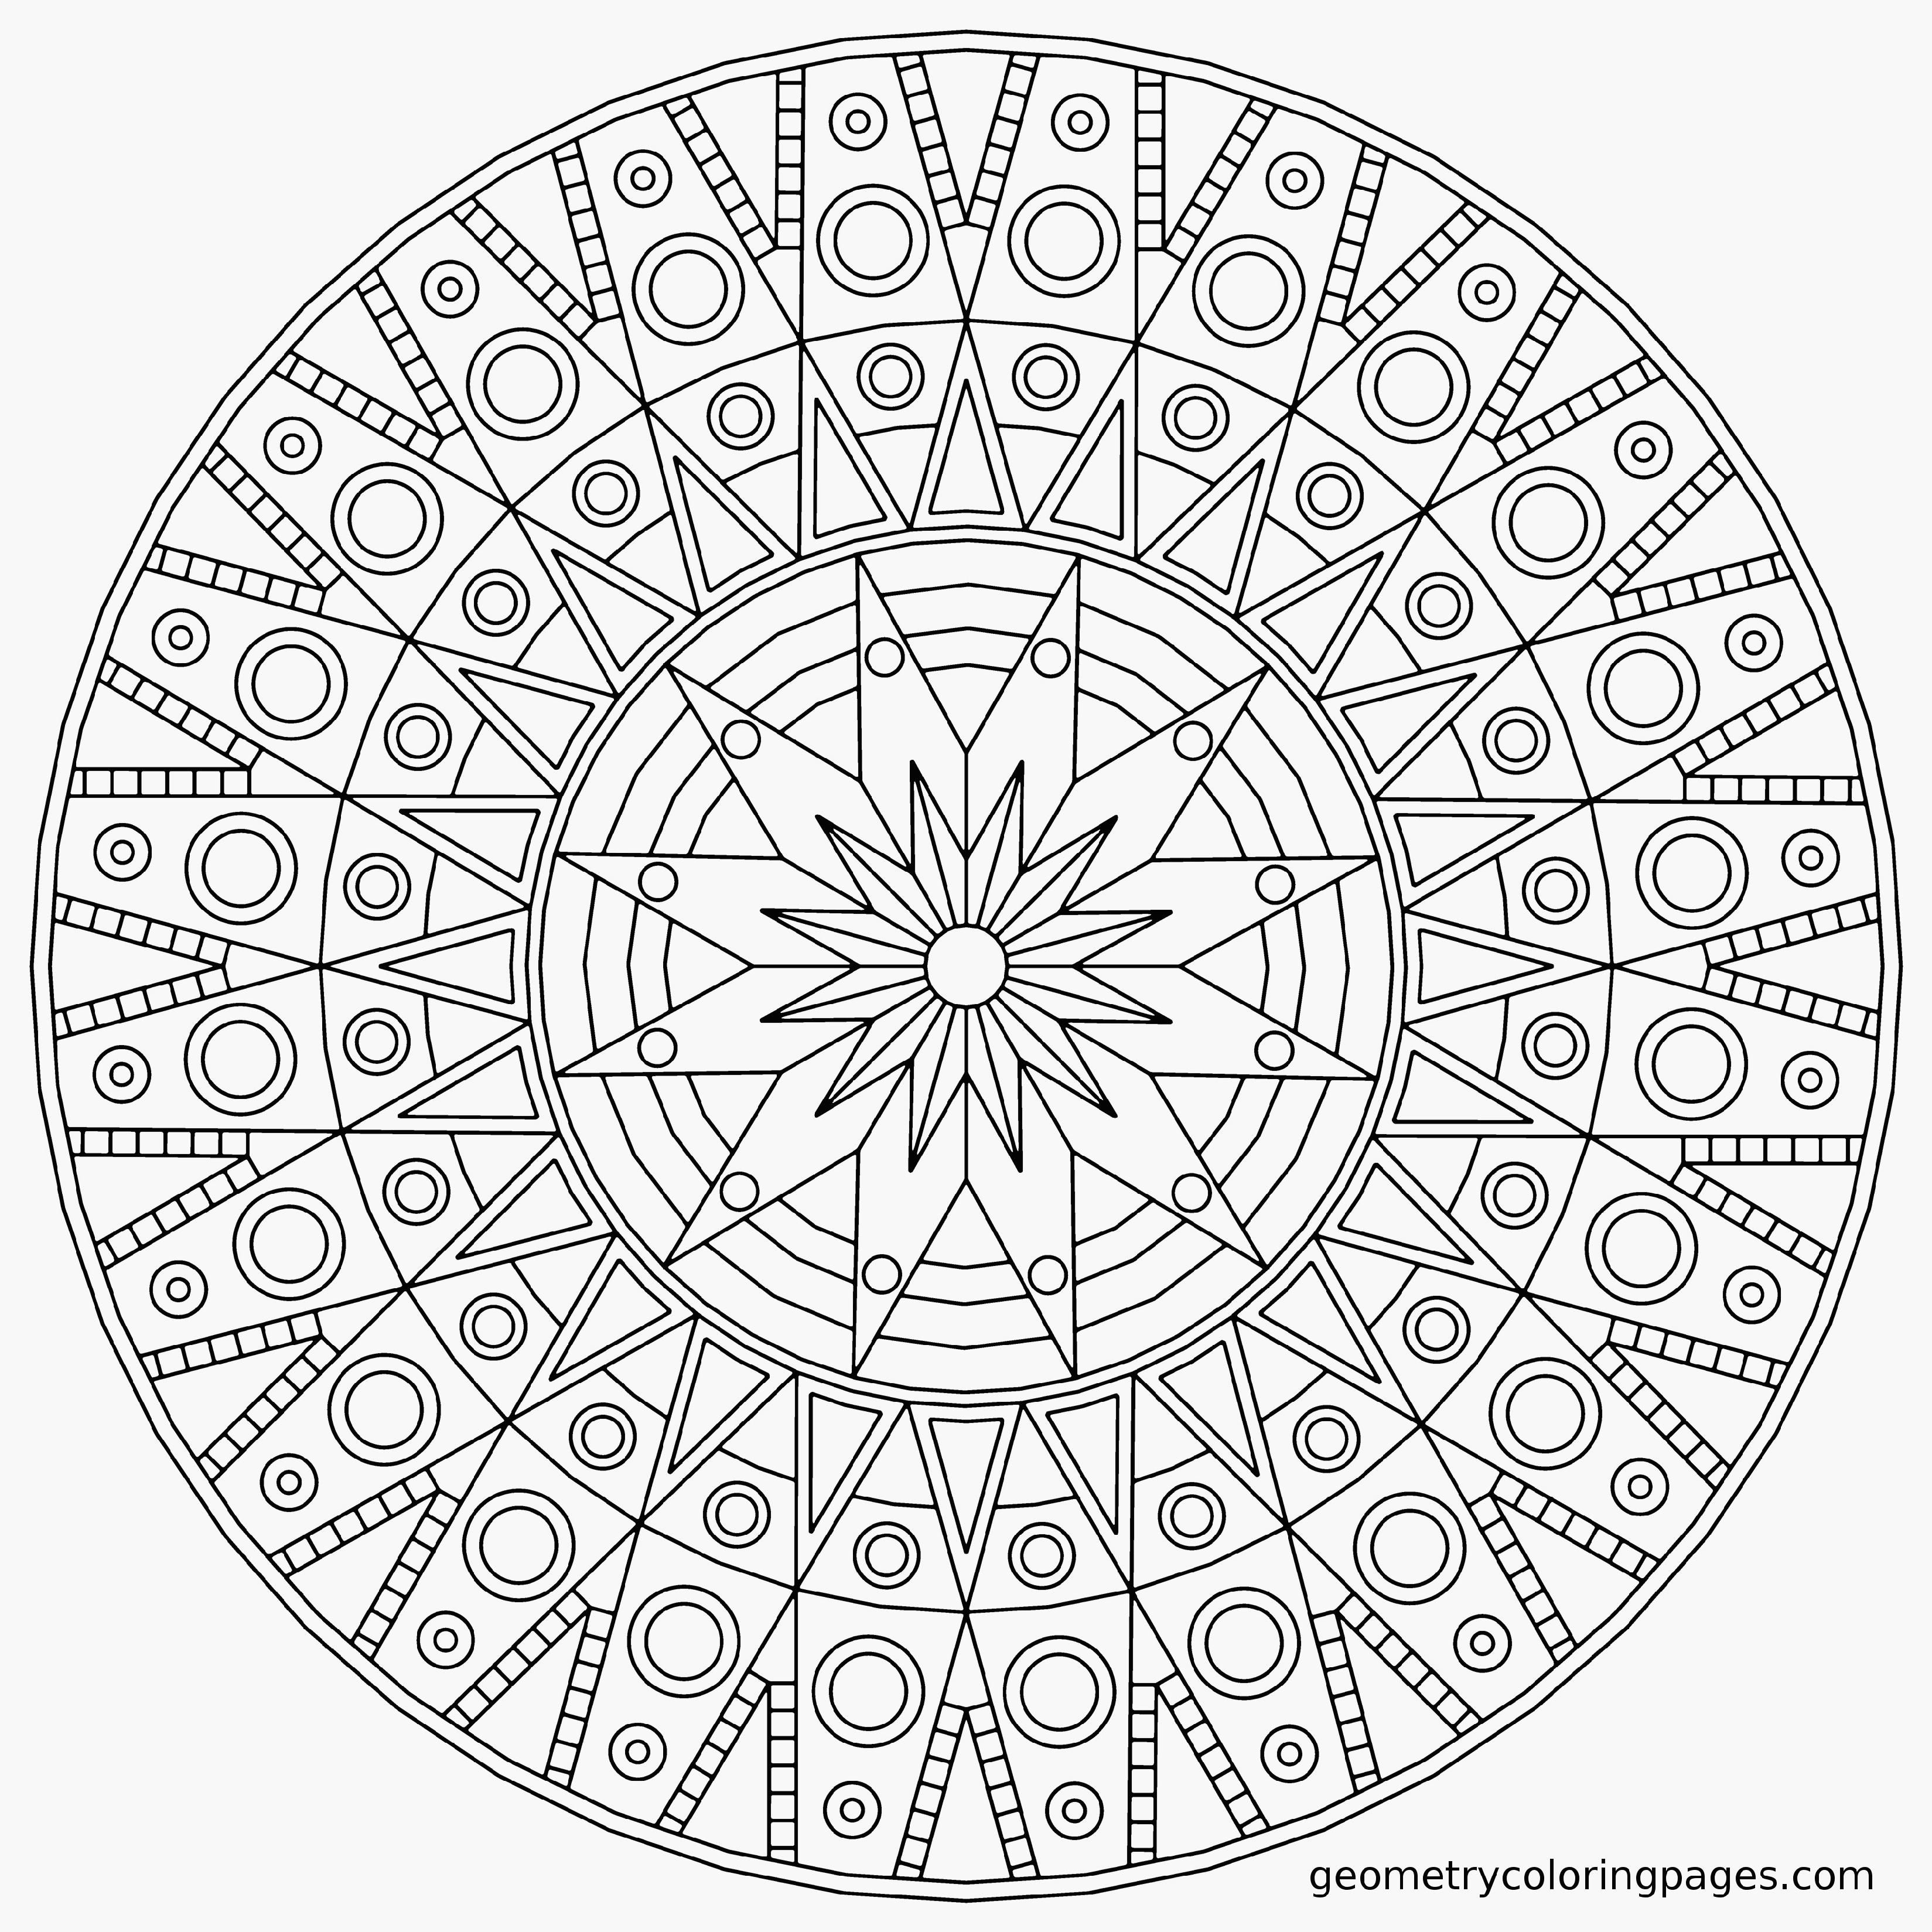 coloring pages intricate mandala coloring pages intricate mandala coloring pages futpal com difficult auromas